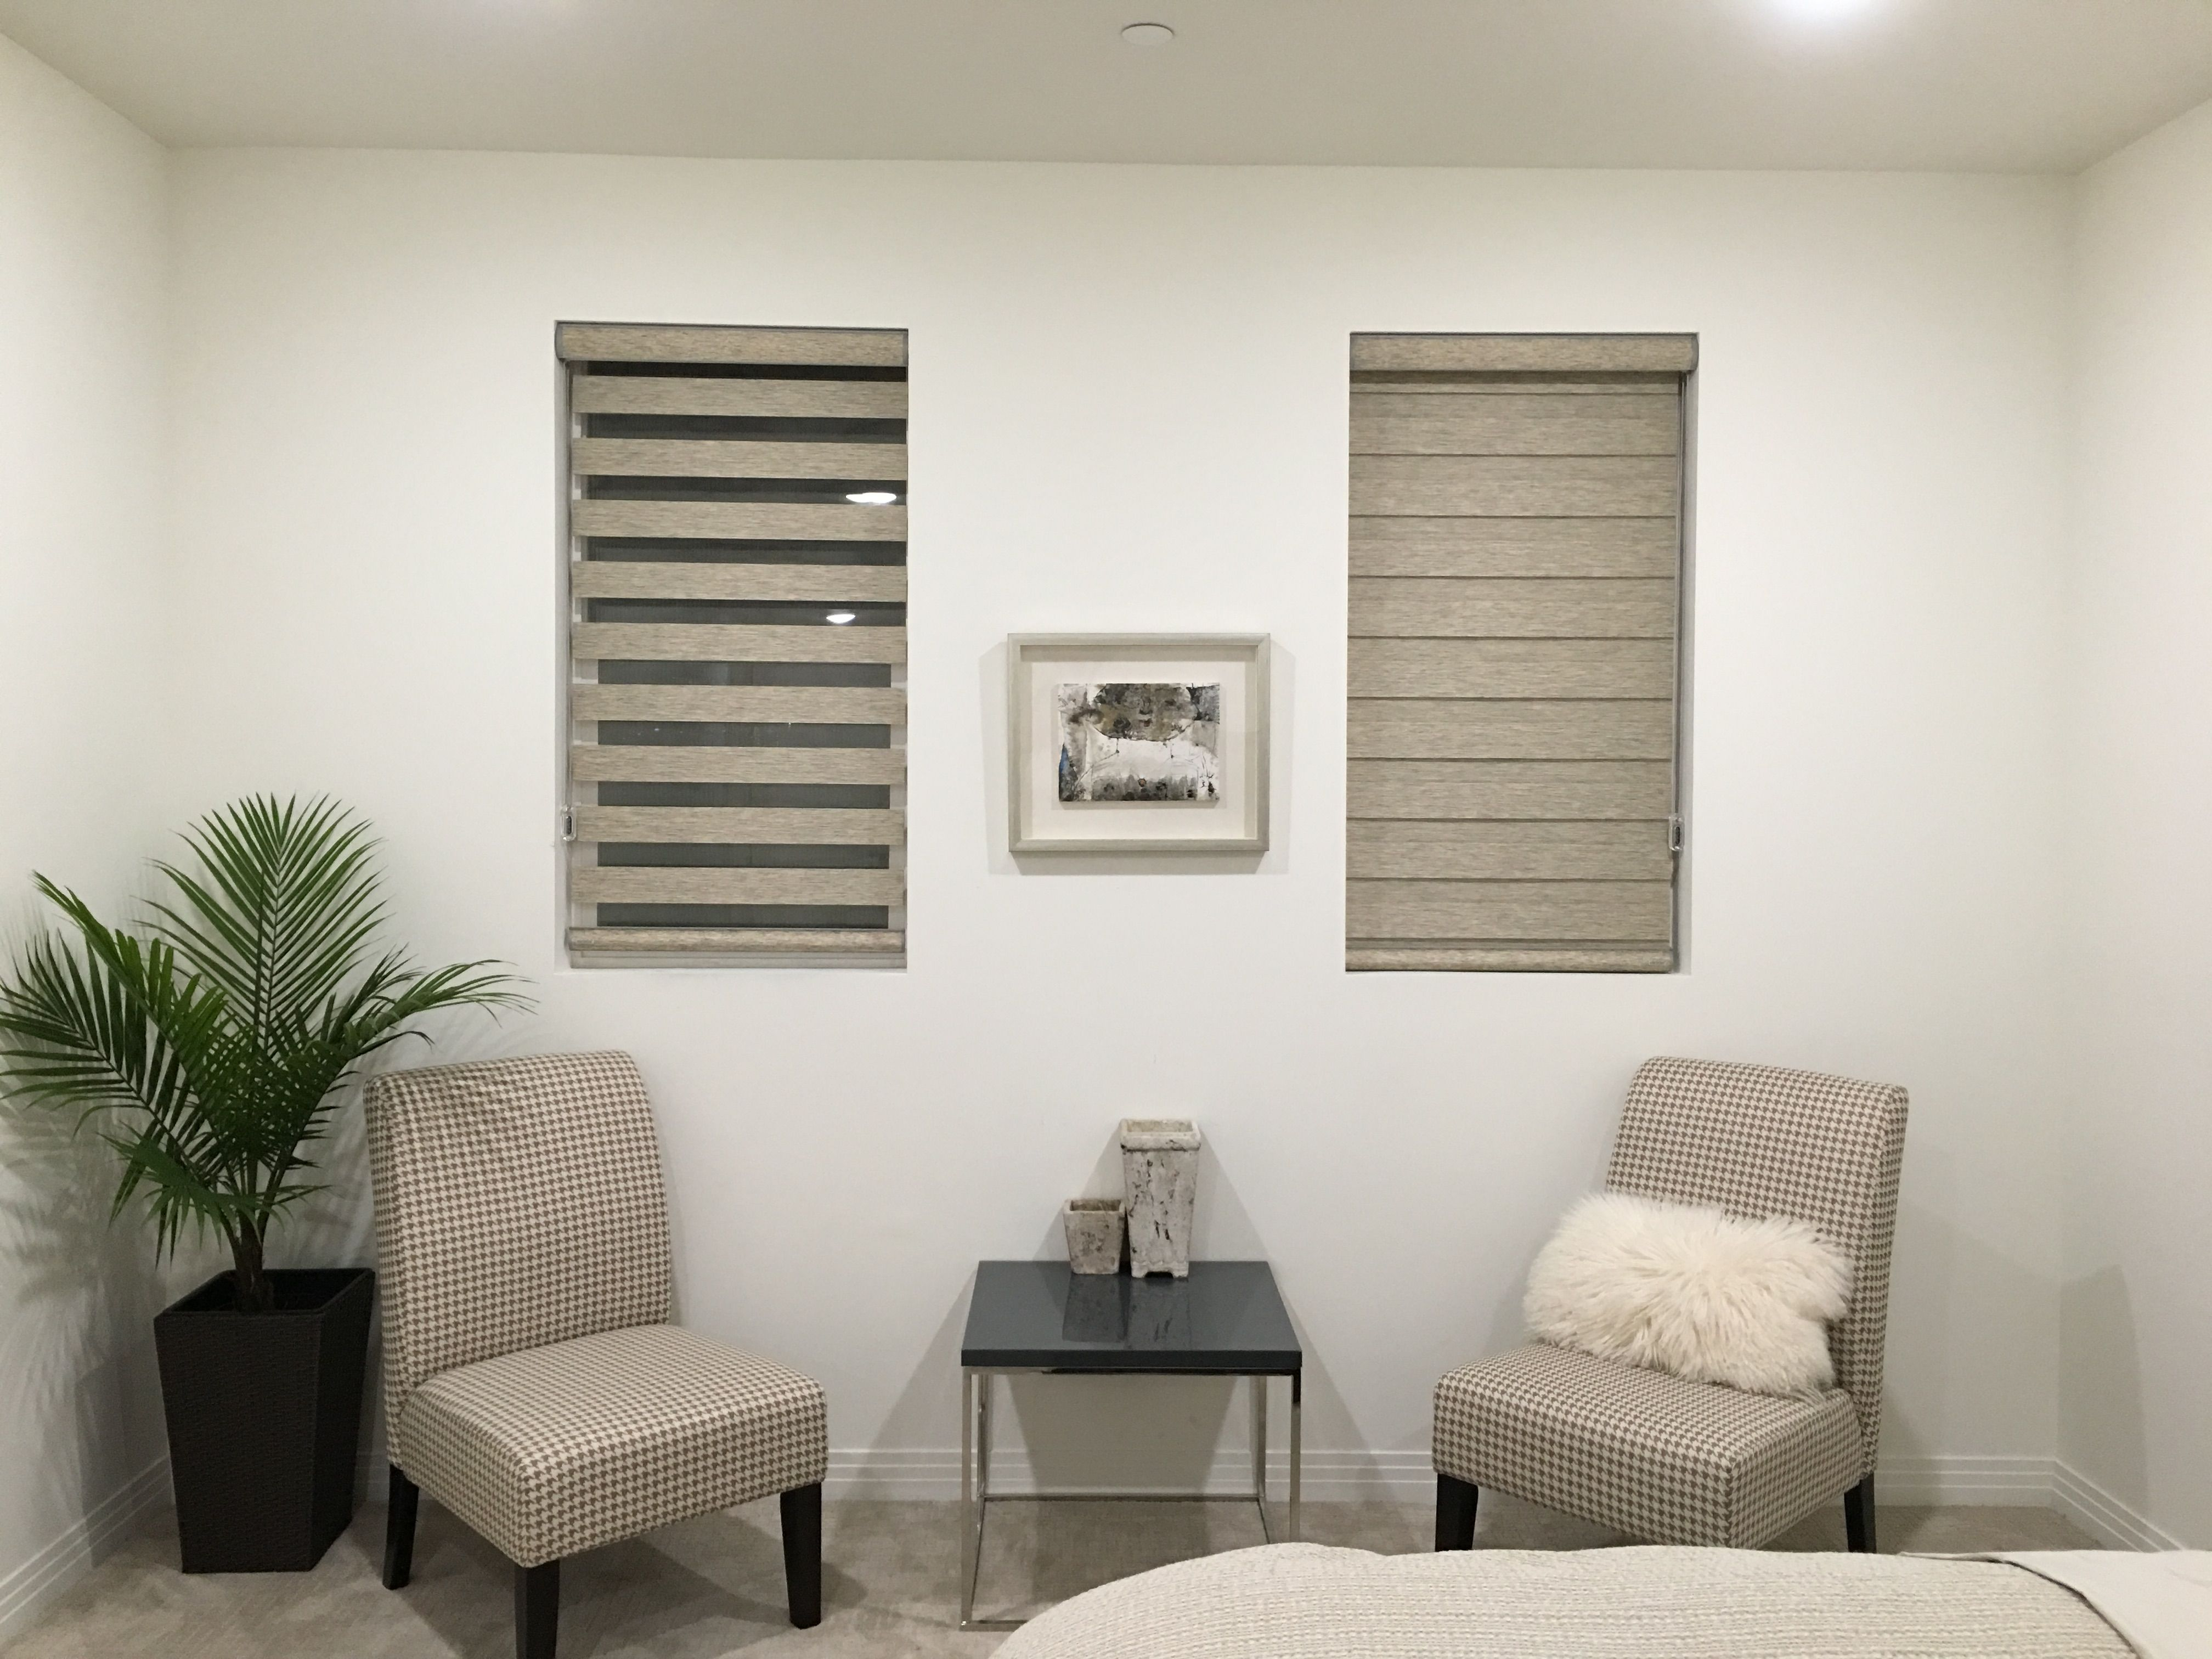 Combi Blinds - modern functional blinds that are eco-friendly, UV ...